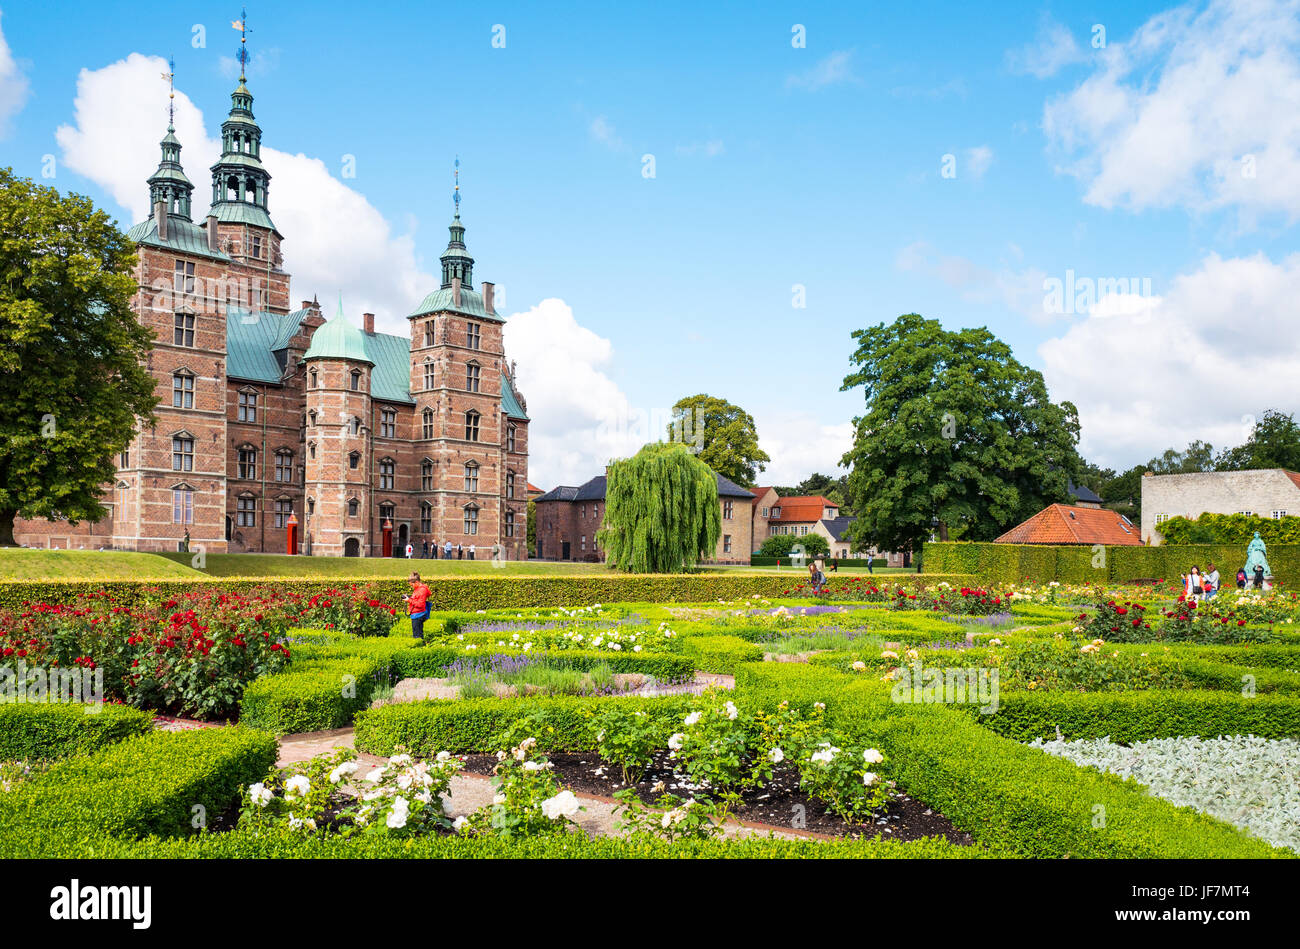 copenhagen denmark the rosenborg castle seen from the king 39 s garden stock photo 147072804 alamy. Black Bedroom Furniture Sets. Home Design Ideas